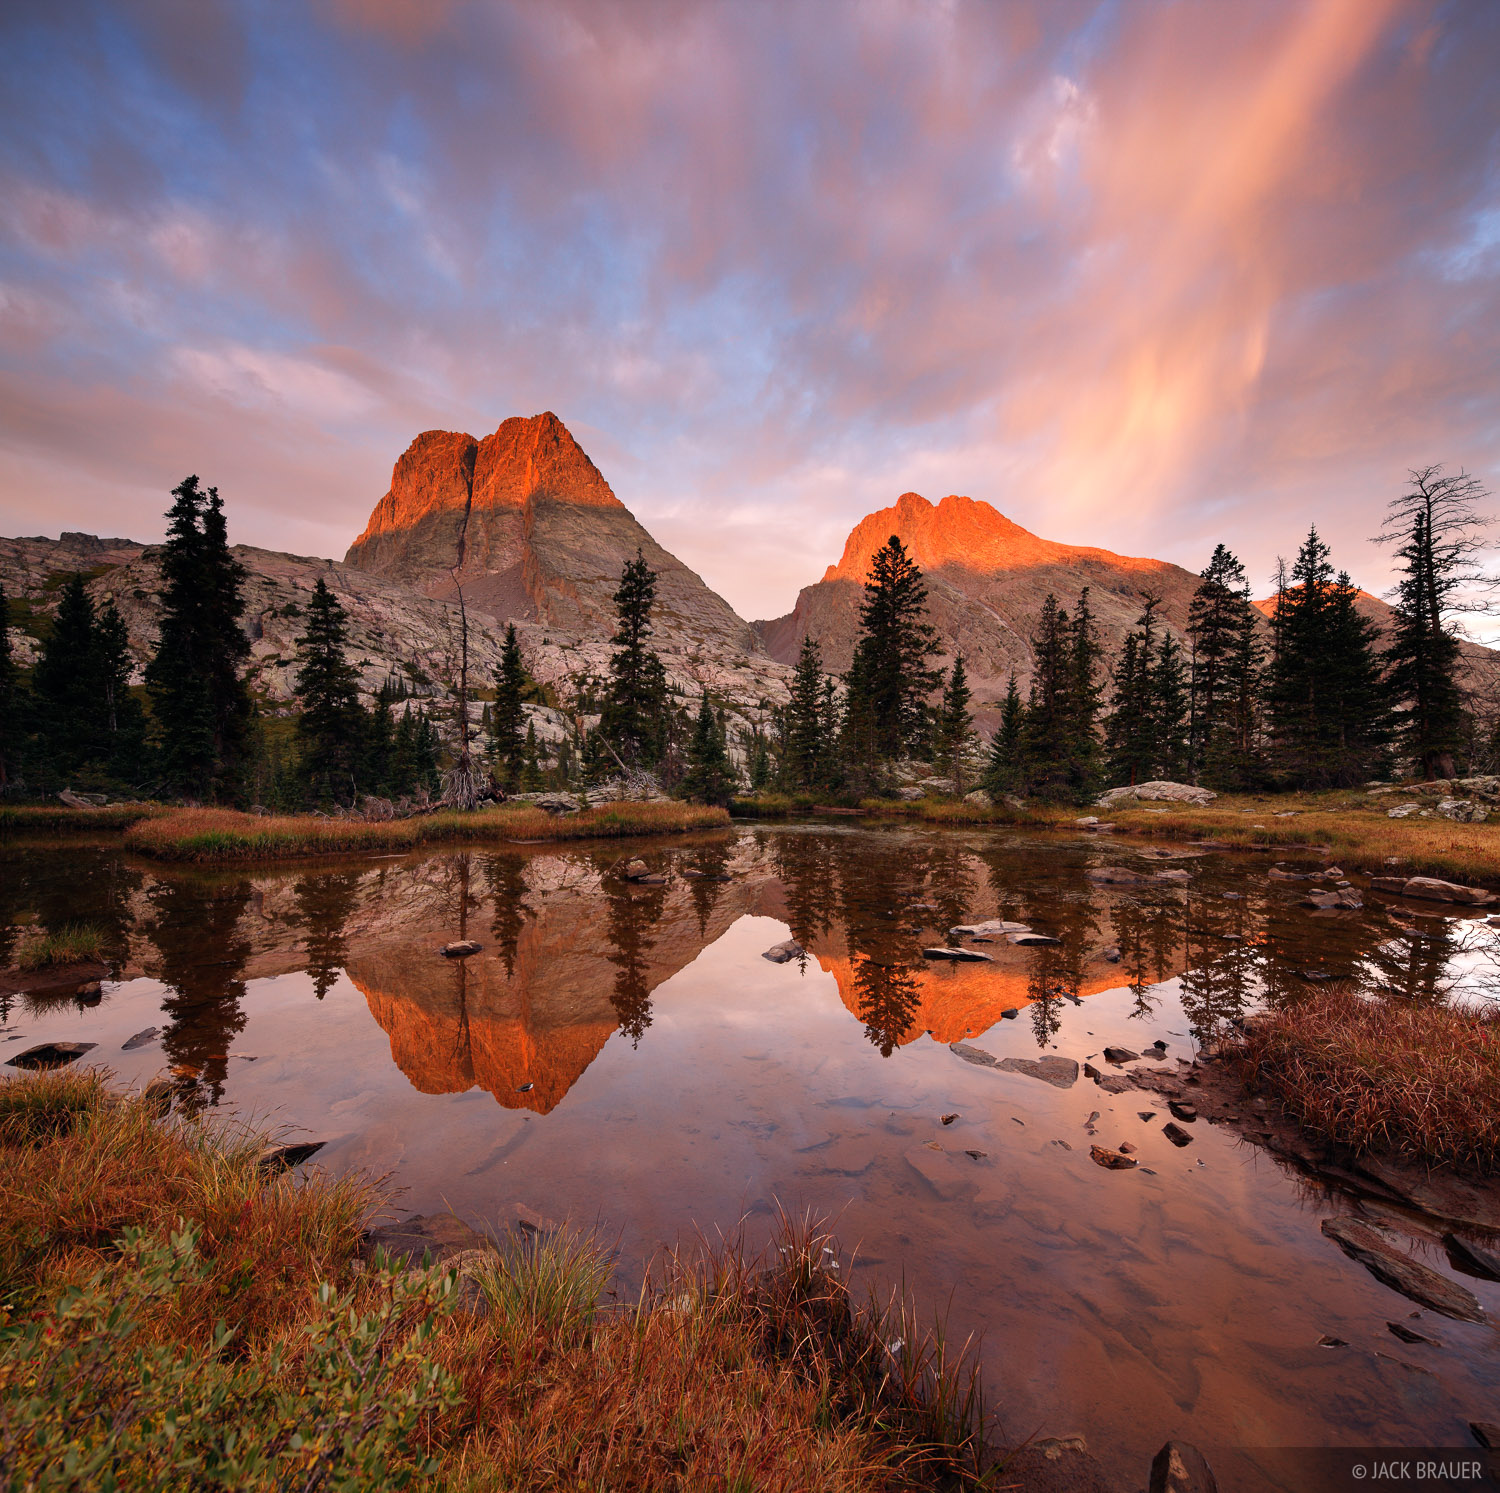 Vestal Peak, Arrow Peak, Grenadier Range, San Juan Mountains, Colorado, sunrise, reflection, photo